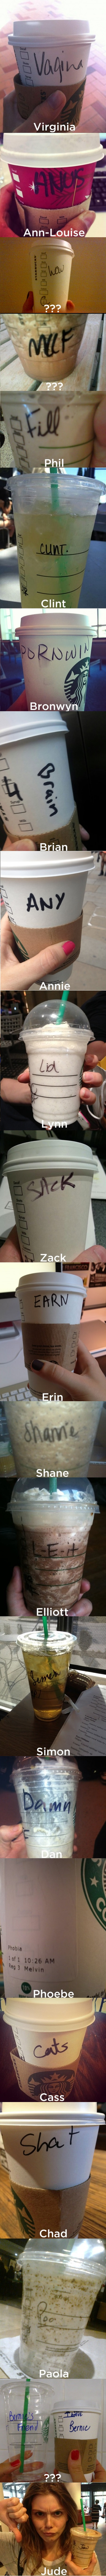 funny-picture-starbucks-wrong-names